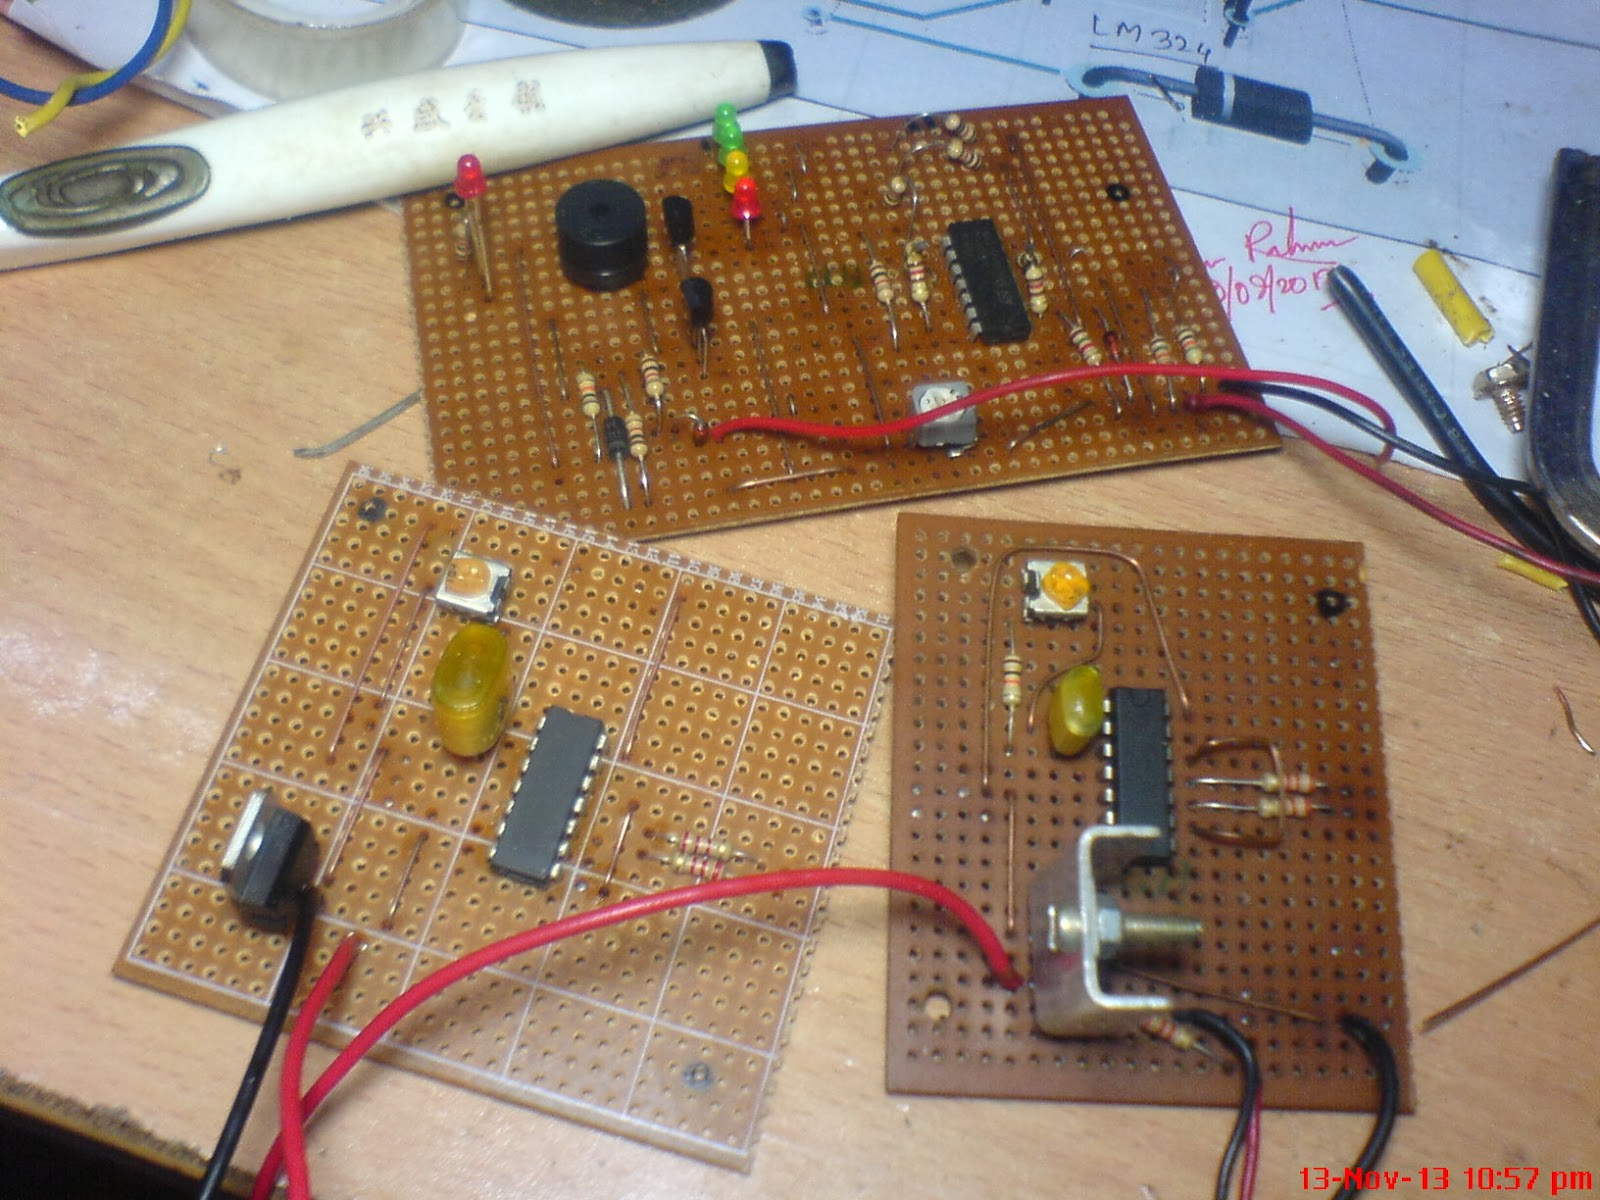 12v Dc To 220v Ac Converter Circuit Nonstop Engineering Inverter Sg3524 230v Invertor Ups Necessary Circuits I Am Still On The Research Of It Hope Yall Fine Here Are Some My Project Pictures 1200w With Charging System